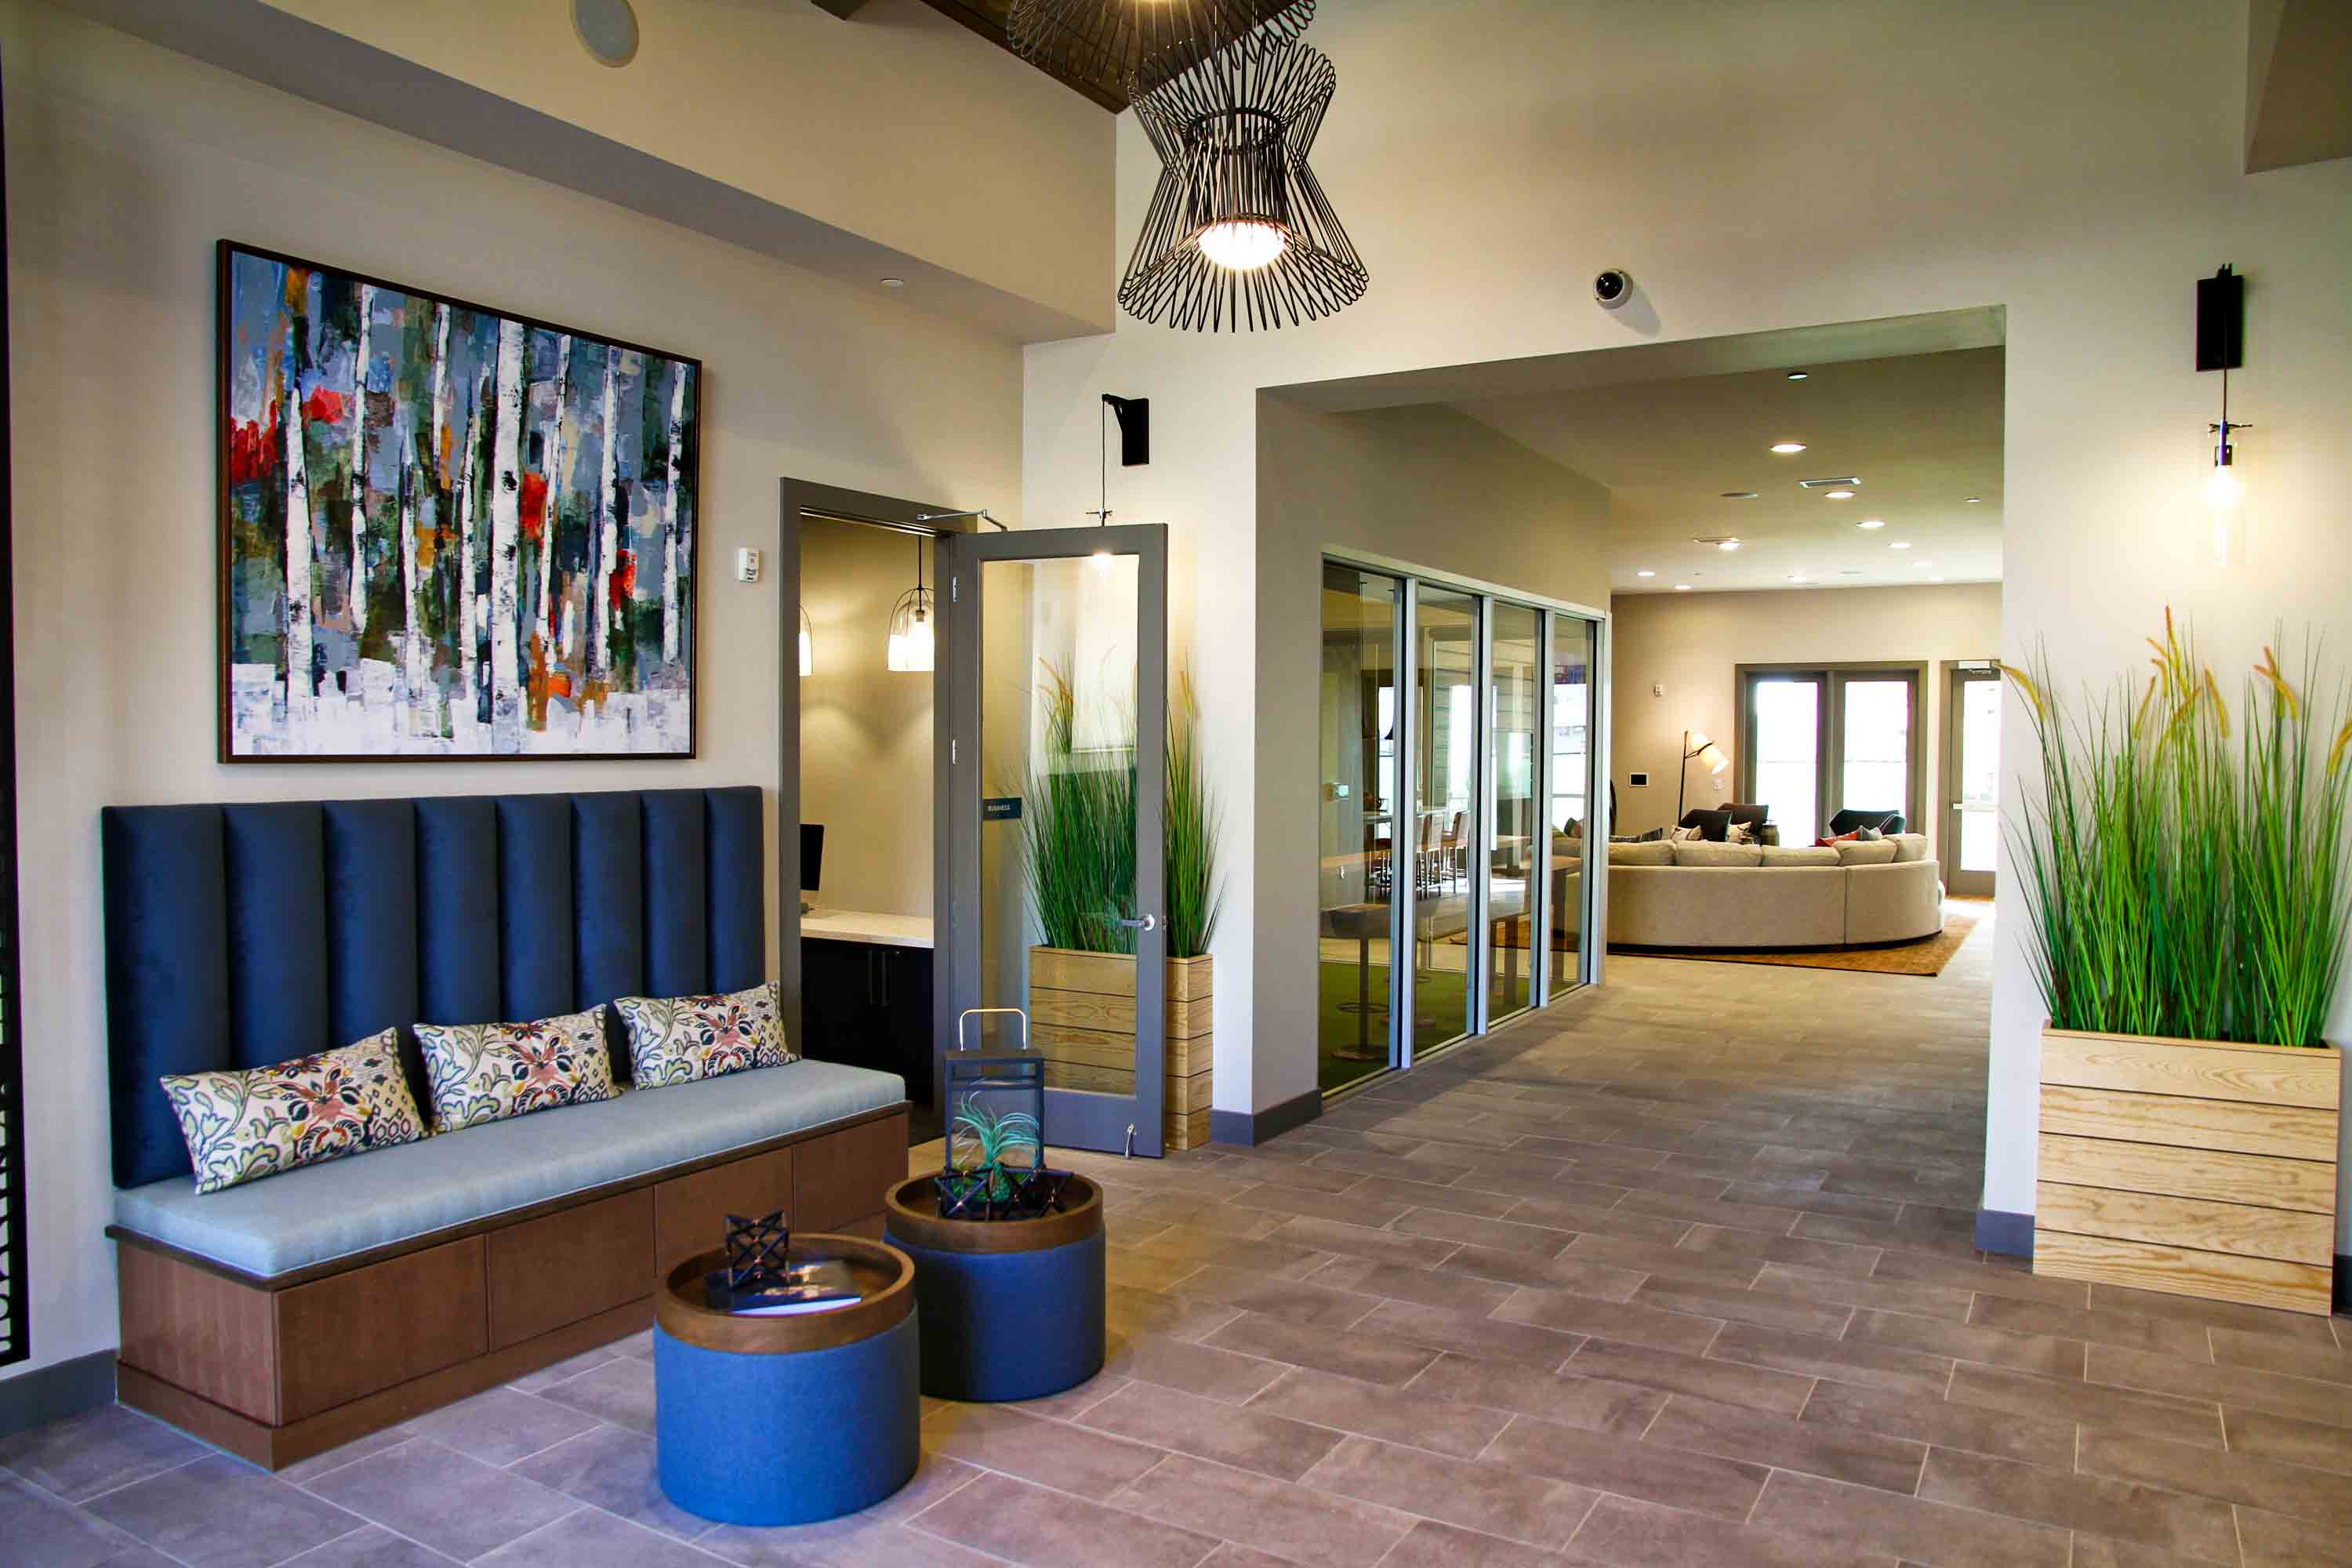 Entrance lobby with tiled floors, plush bench seat, wood planters with tall grasses, and modern chandelier.